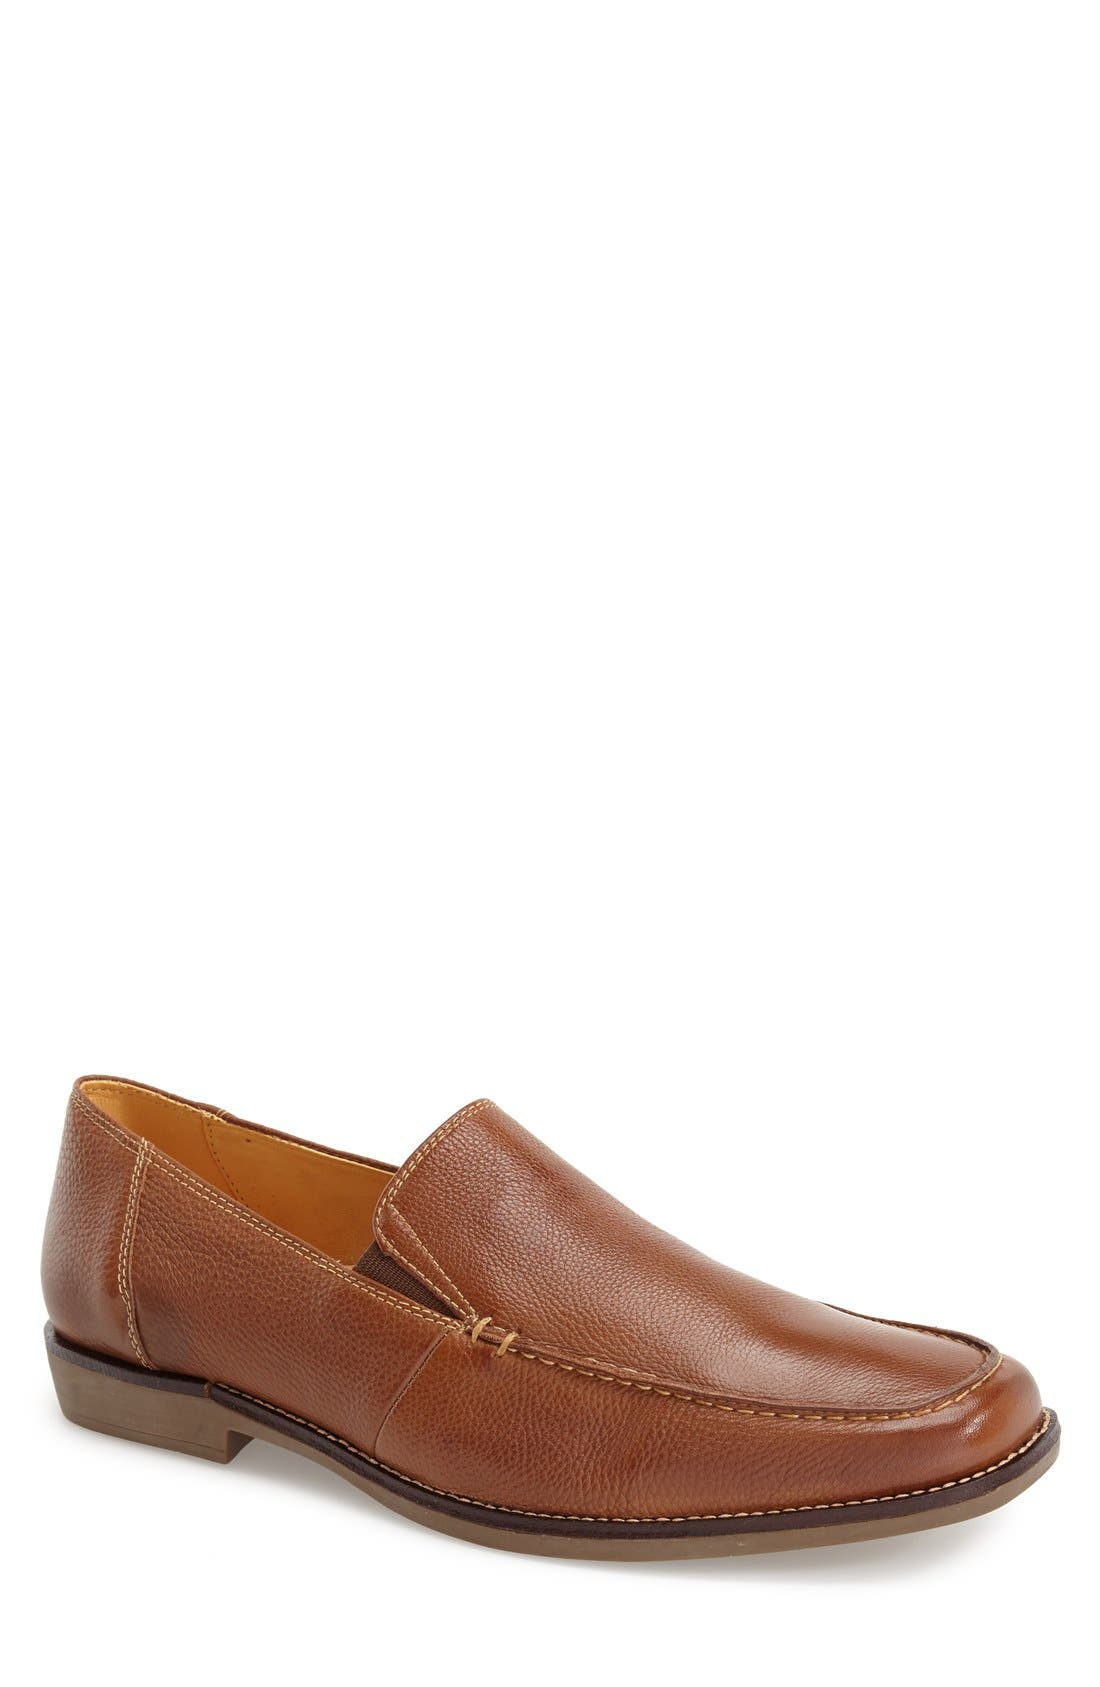 Main Image - Sandro Moscoloni 'Easy' Leather Venetian Loafer (Men)